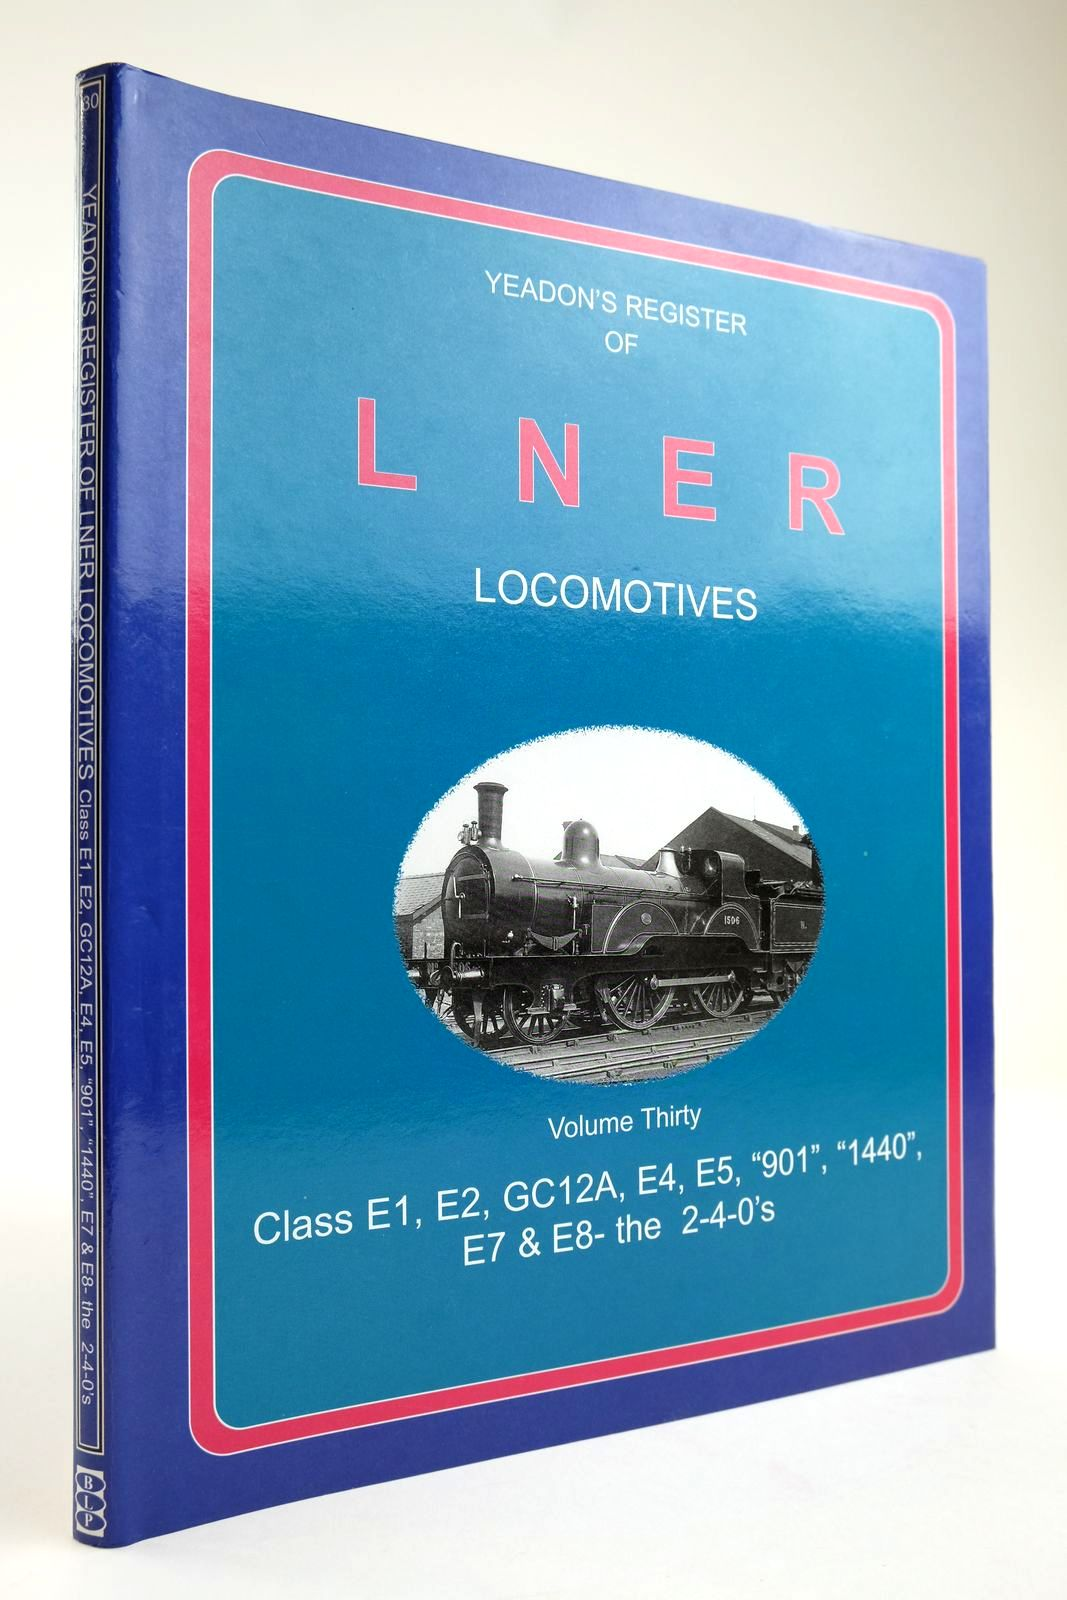 Photo of YEADON'S REGISTER OF LNER LOCOMOTIVES VOLUME THIRTY written by Yeadon, W.B. published by Challenger Publications, Book Law Publications (STOCK CODE: 2133586)  for sale by Stella & Rose's Books